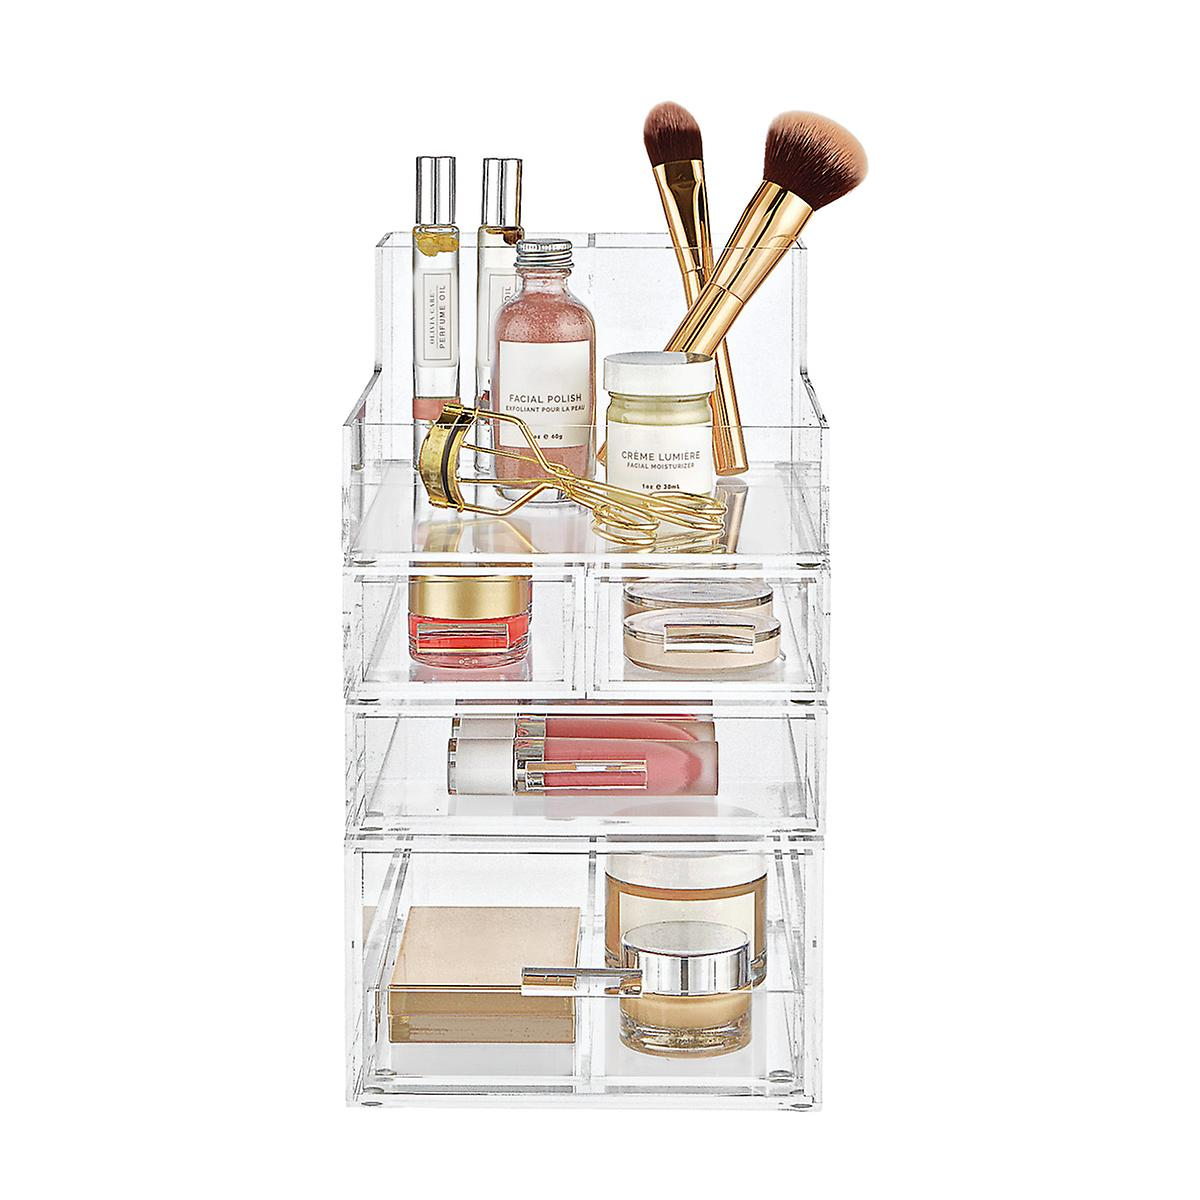 Luxe Acrylic Small Makeup Storage Kit The Container Store